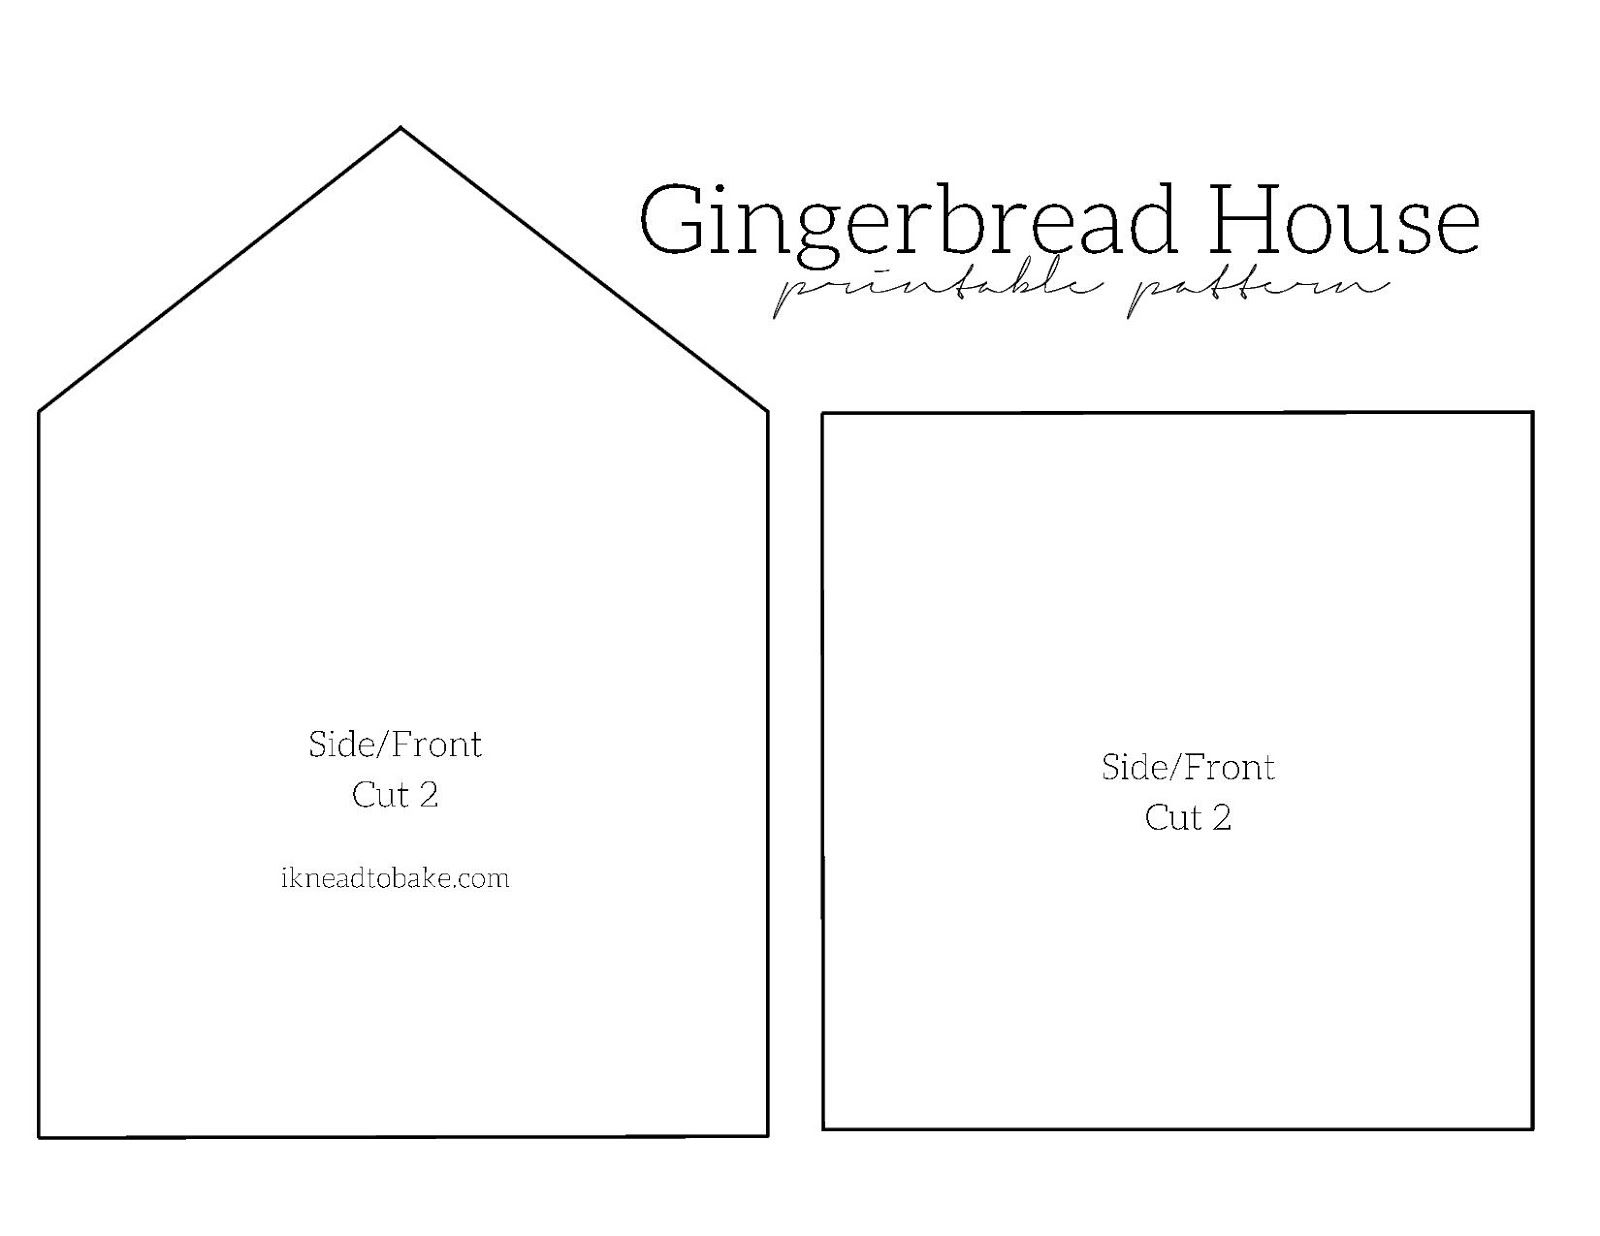 Current image pertaining to gingerbread house printable template